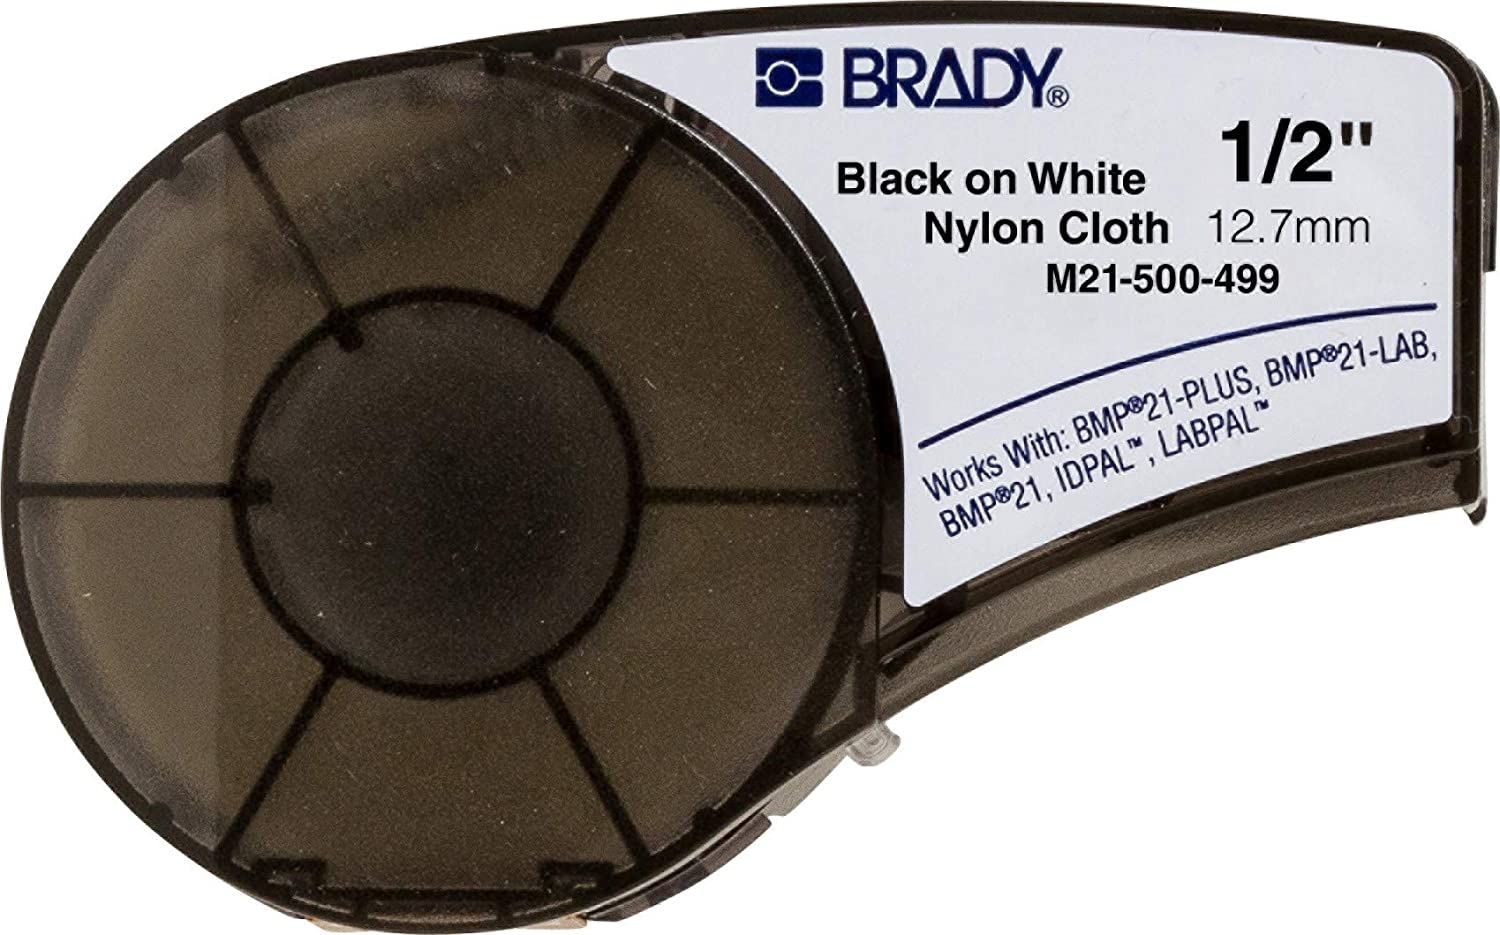 Brady Authentic (M21-500-499) Multi-Purpose Nylon Label for General Identification, Wire Marking, and Laboratory Labeling, Black on White material - Designed for BMP21-PLUS and BMP21-LAB Label Printers, .5